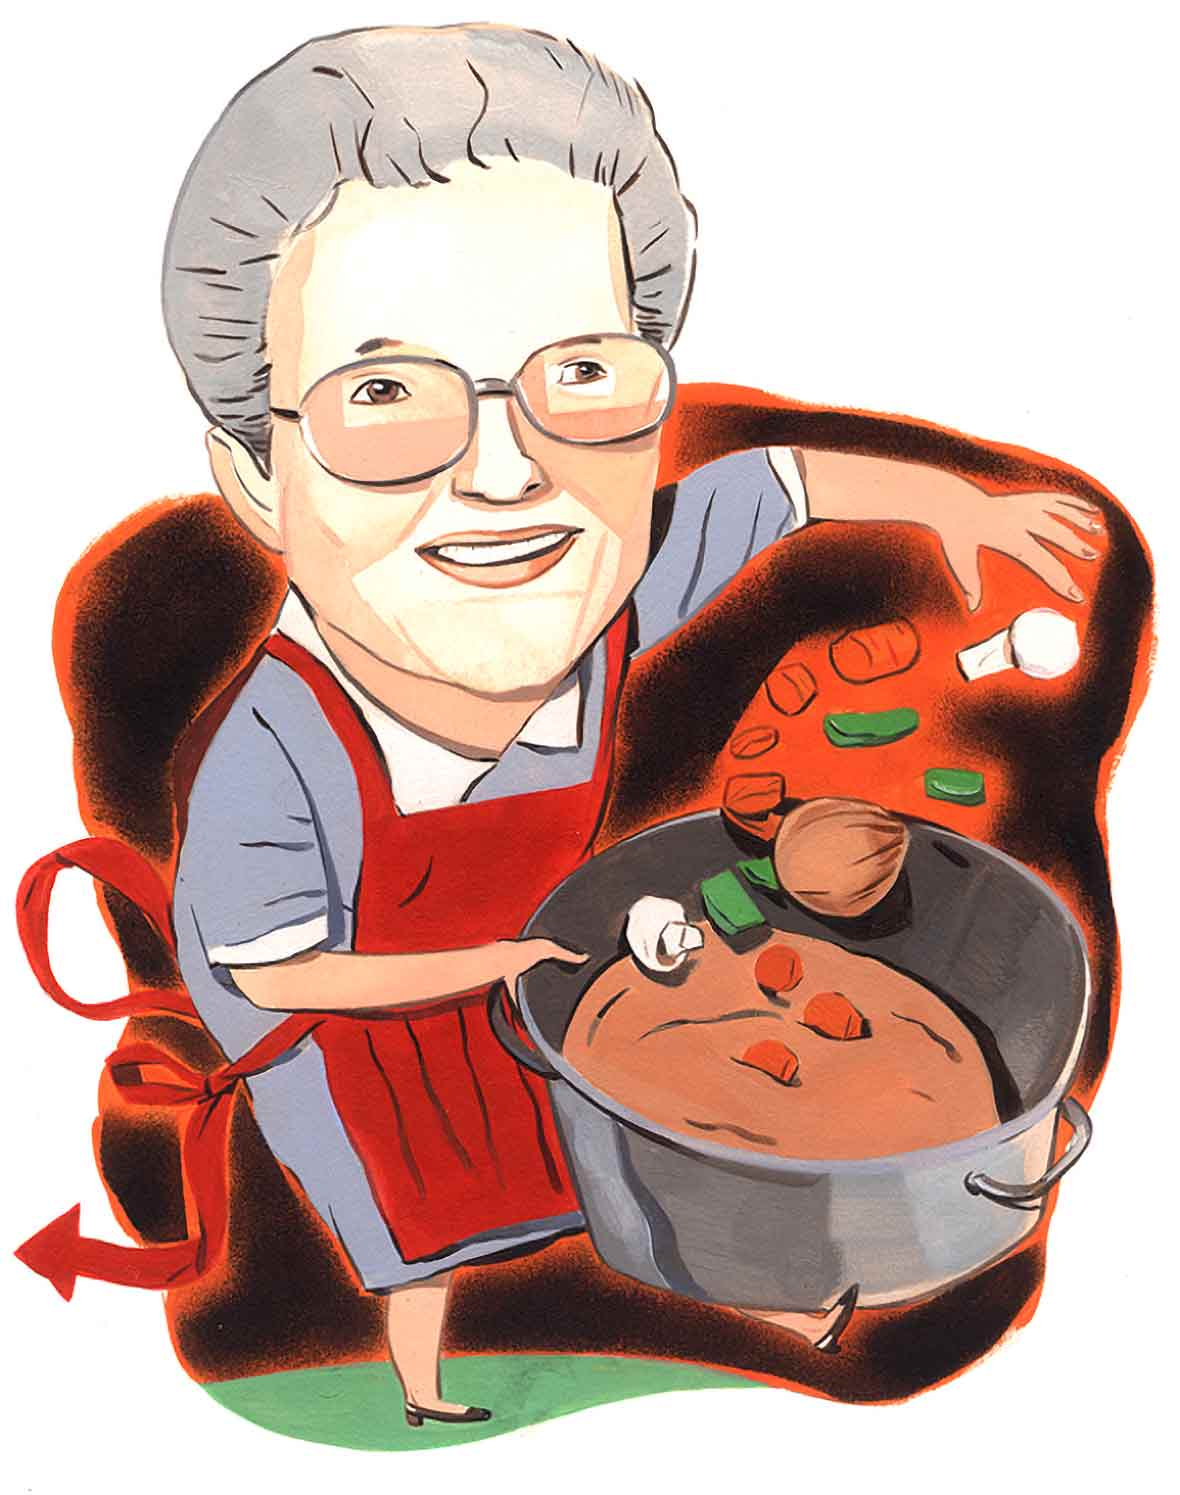 Illustration of a woman in a red apron holding a pot of stew